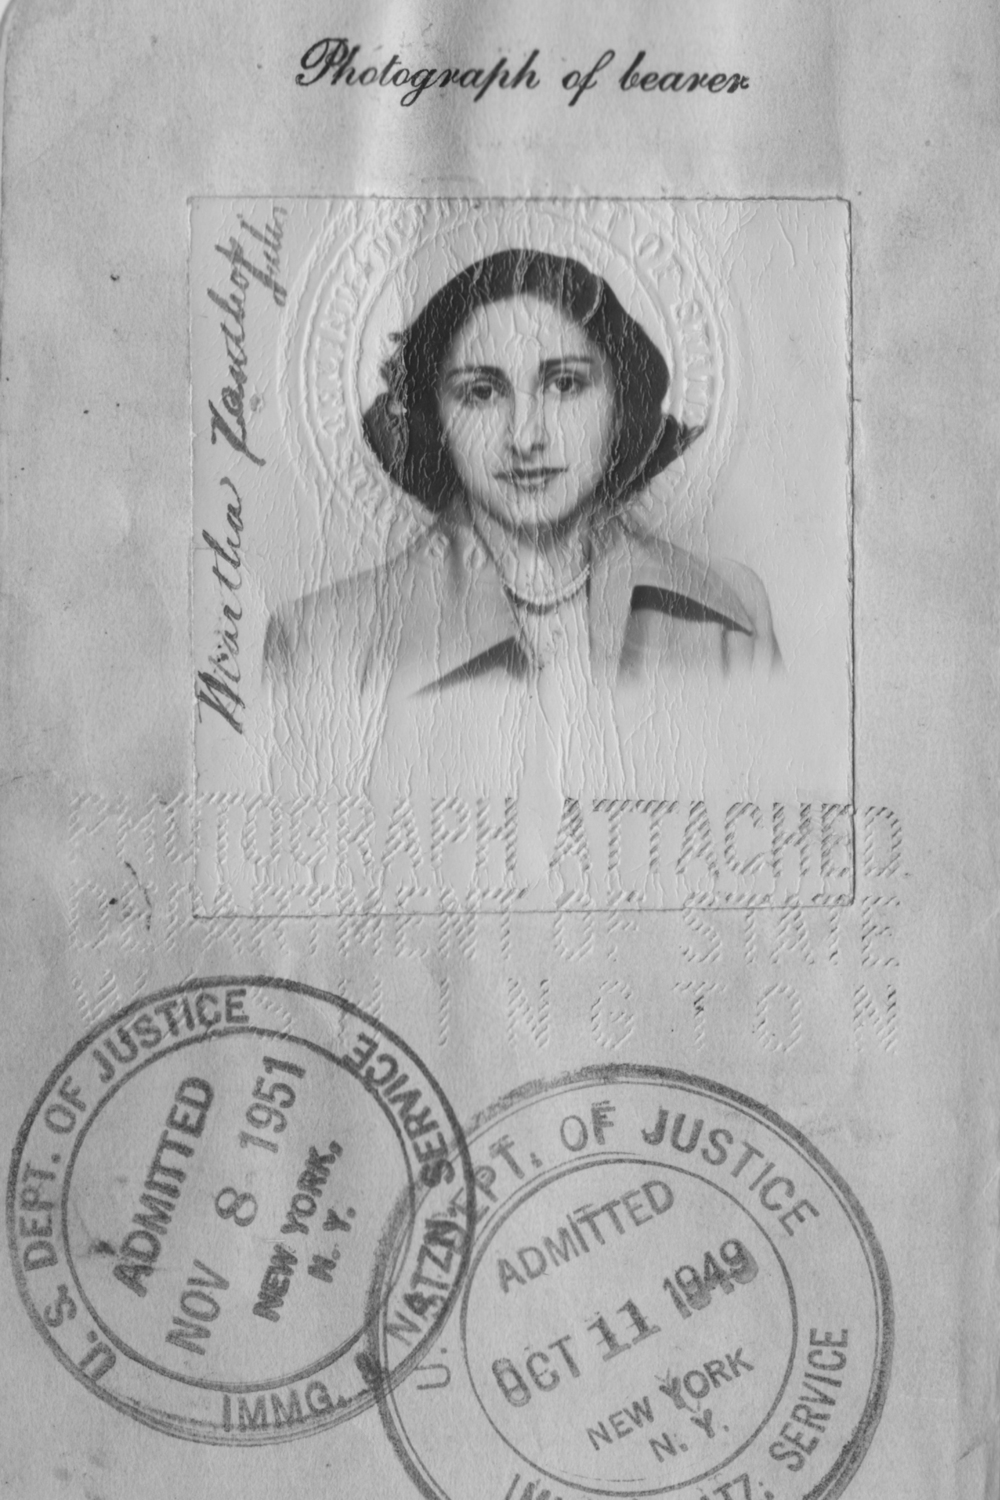 My mother's passport photograph when she was 19 years old.